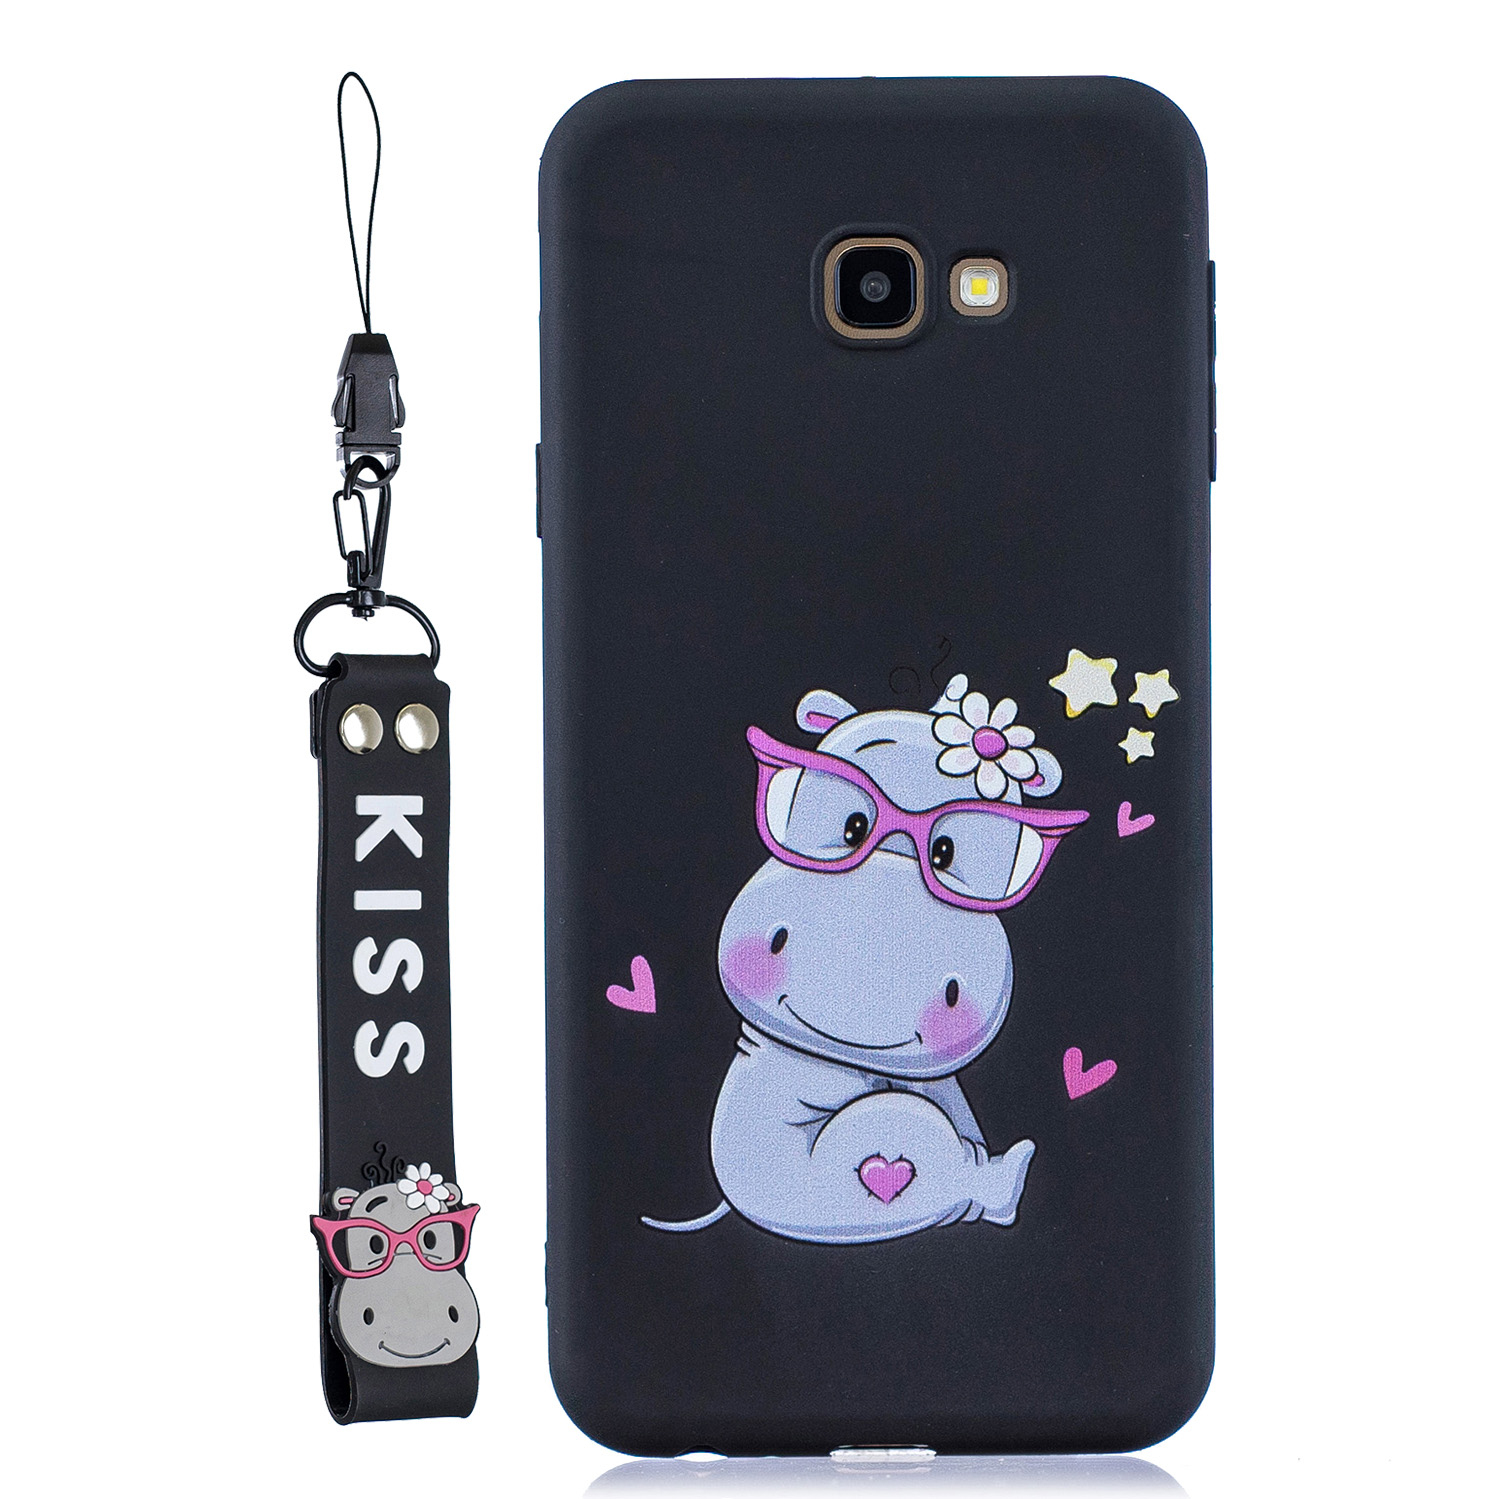 For Samsung A5 2017 Cartoon Lovely Coloured Painted Soft TPU Back Cover Non-slip Shockproof Full Protective Case with Lanyard black